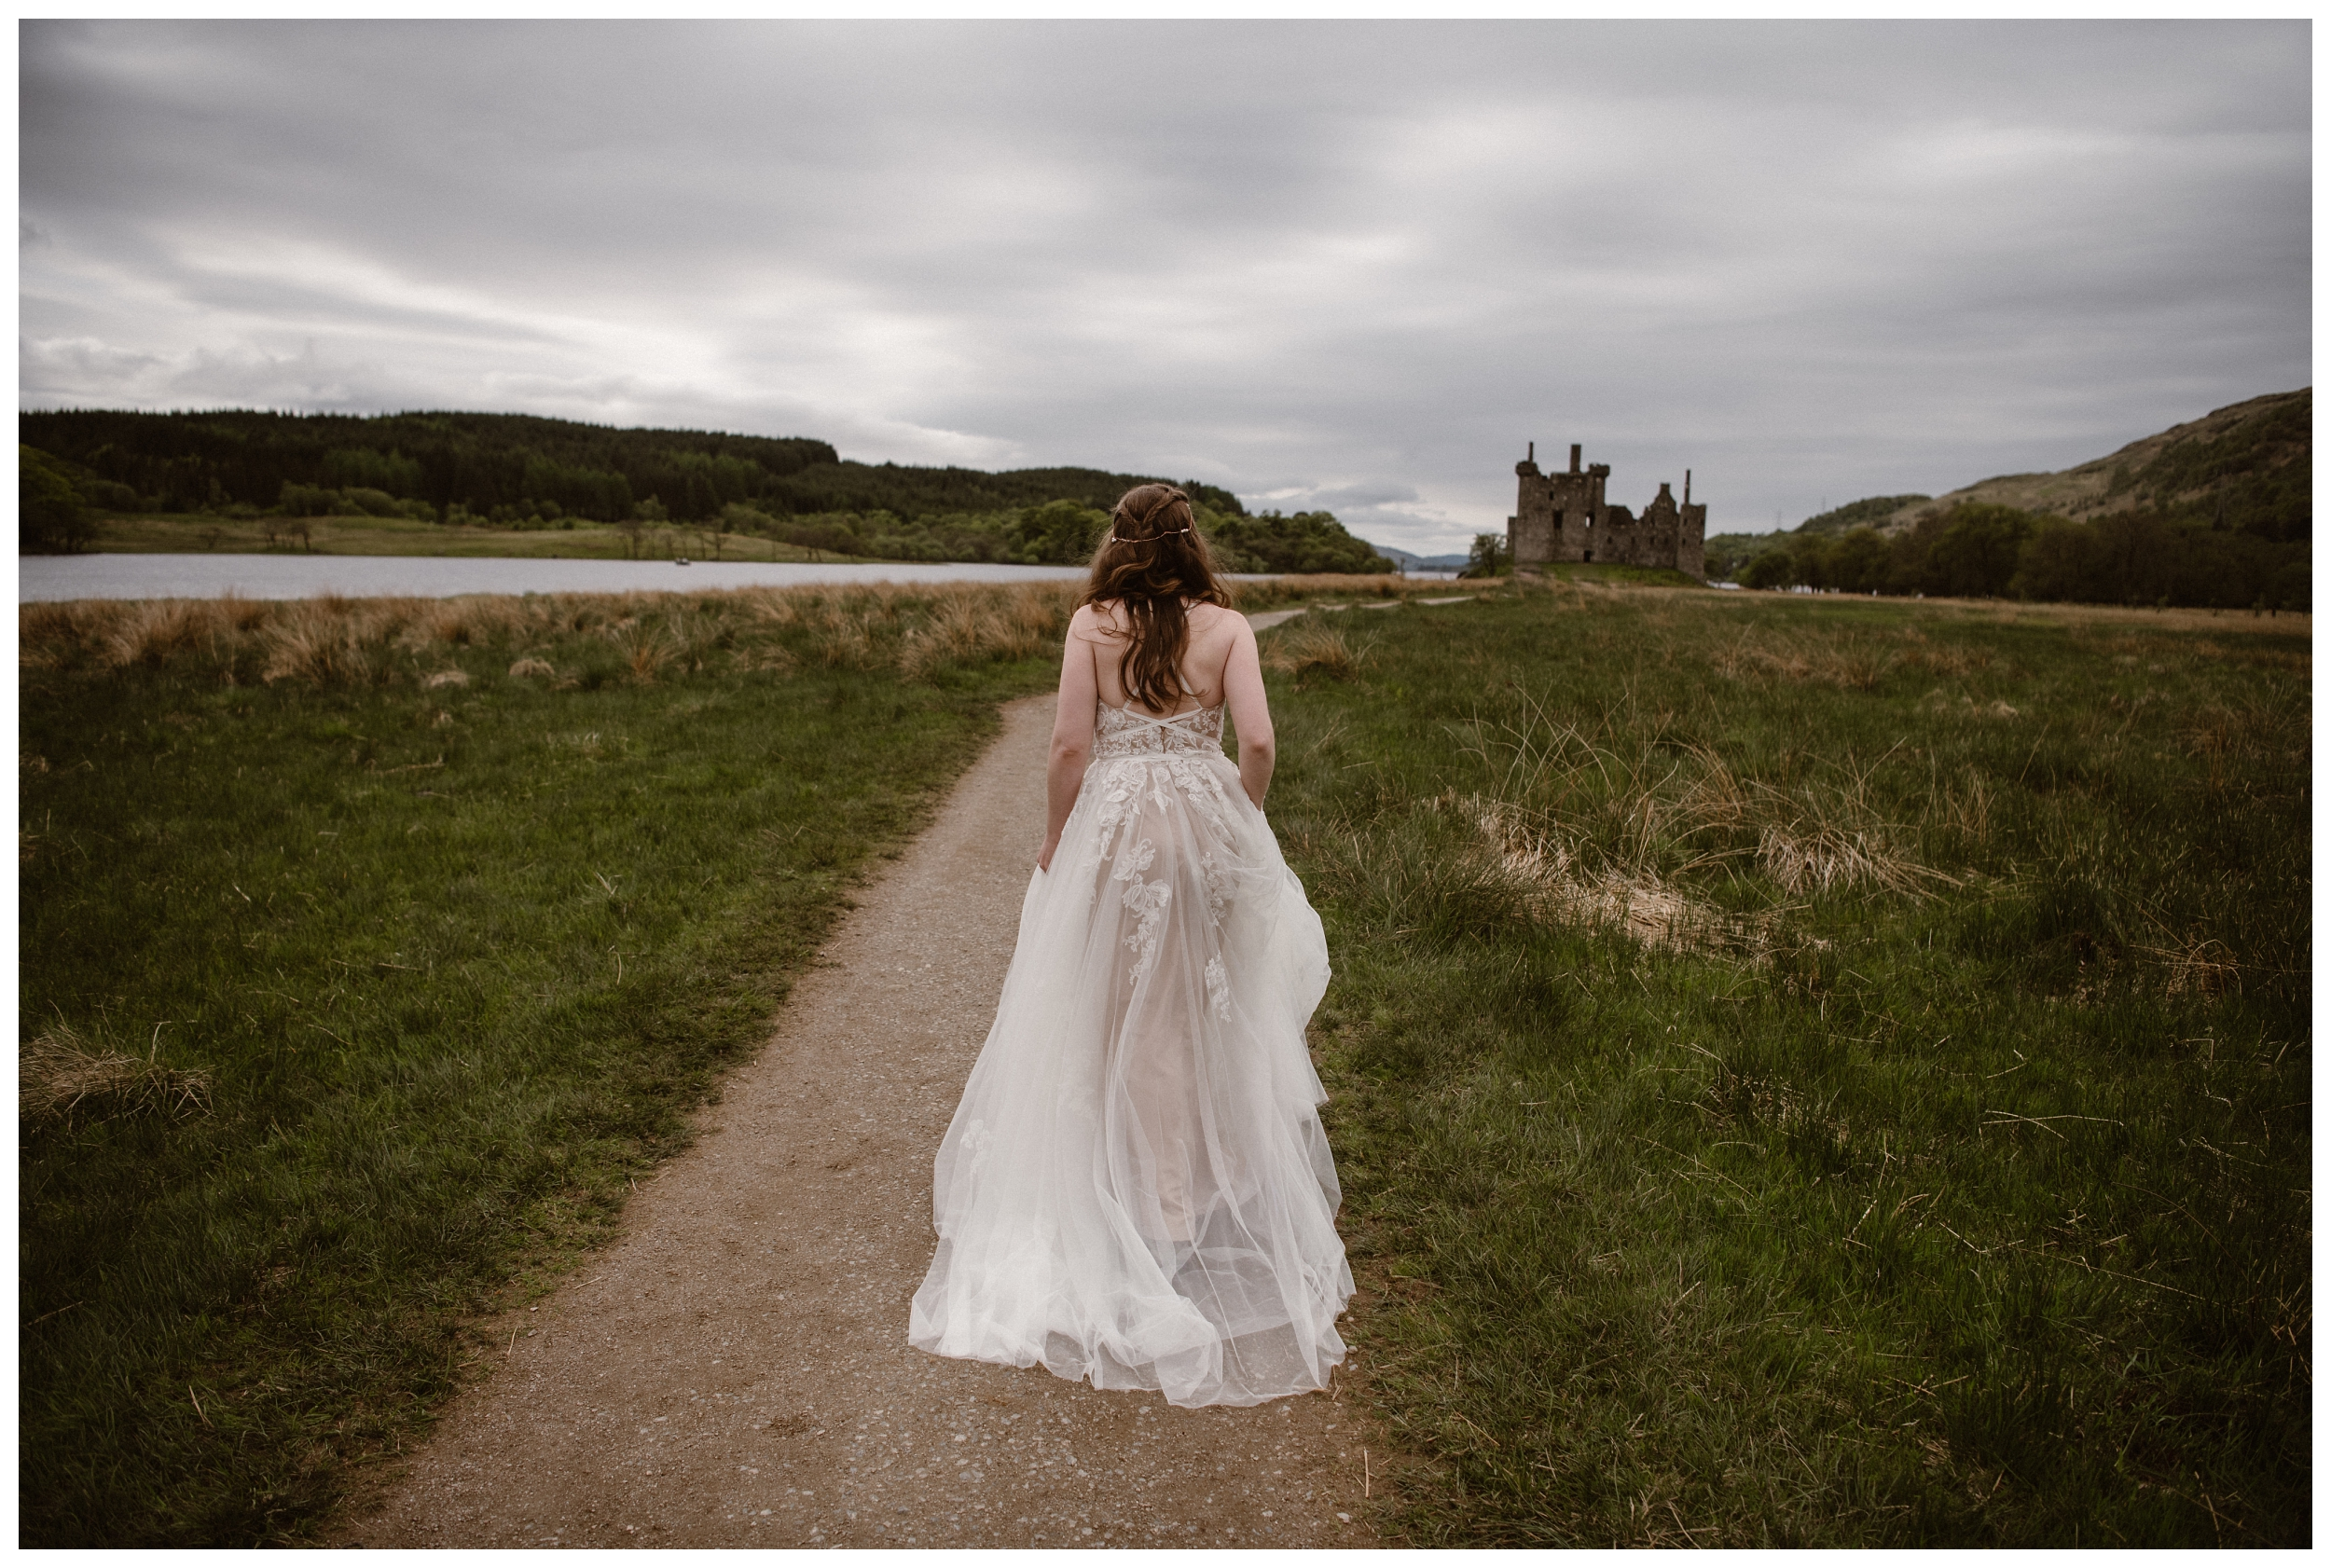 With the ruins of mid-15 century Kilchurn Castle behind her, Elissa walks on the dirt road for her first look ahead of her destination elopement ceremony. Photo by Maddie Mae, Adventure Instead.